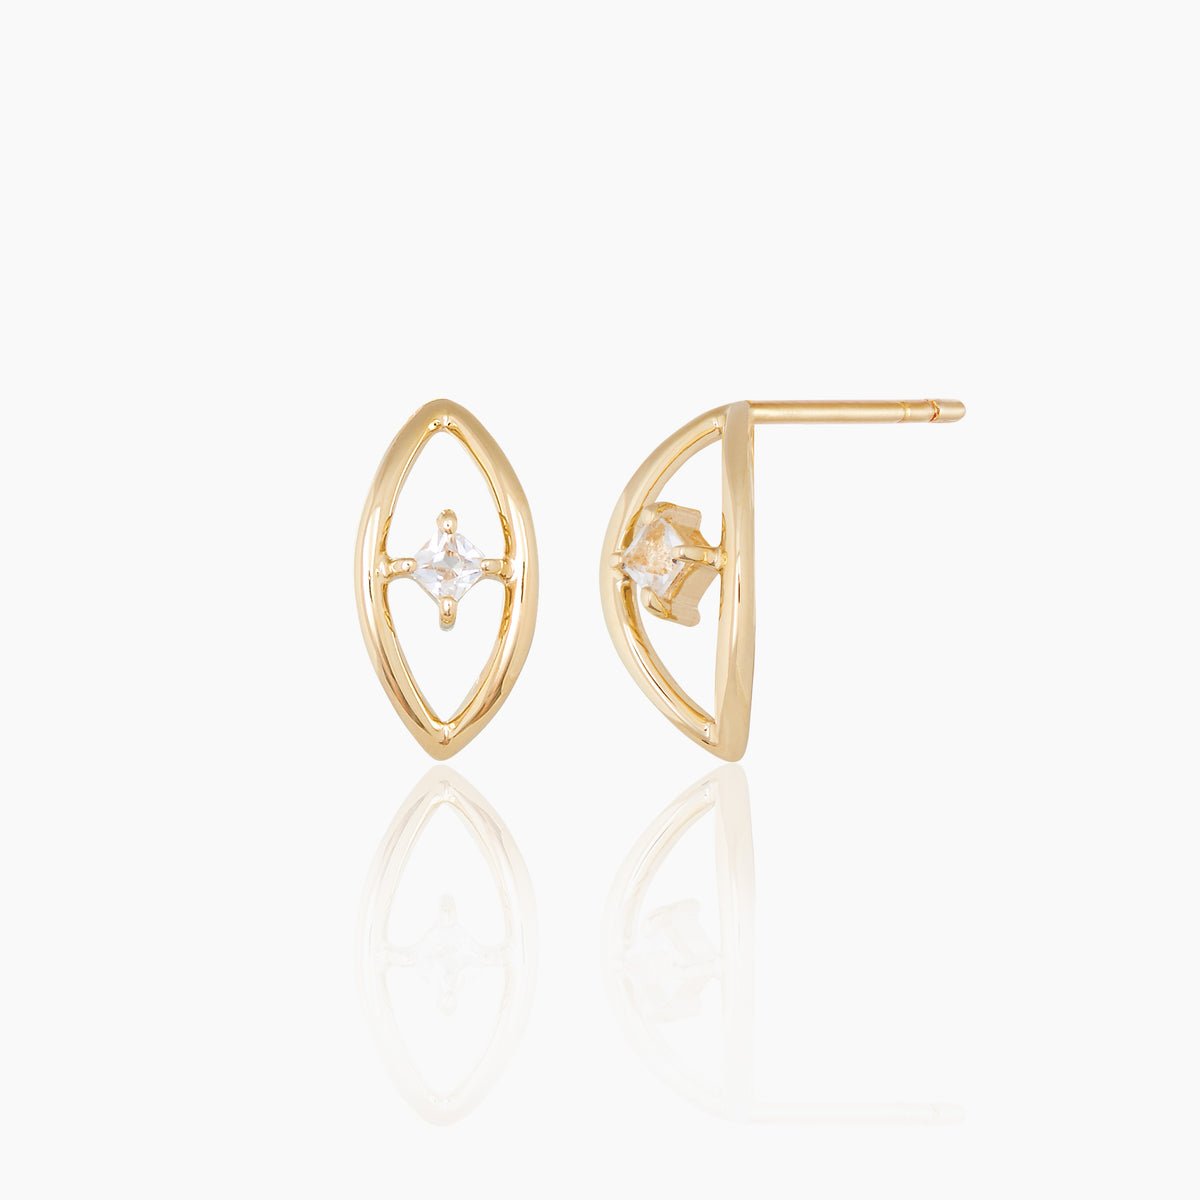 A pair of gold earring with white topaz, the constellation earring as part of the otiumberg collection.